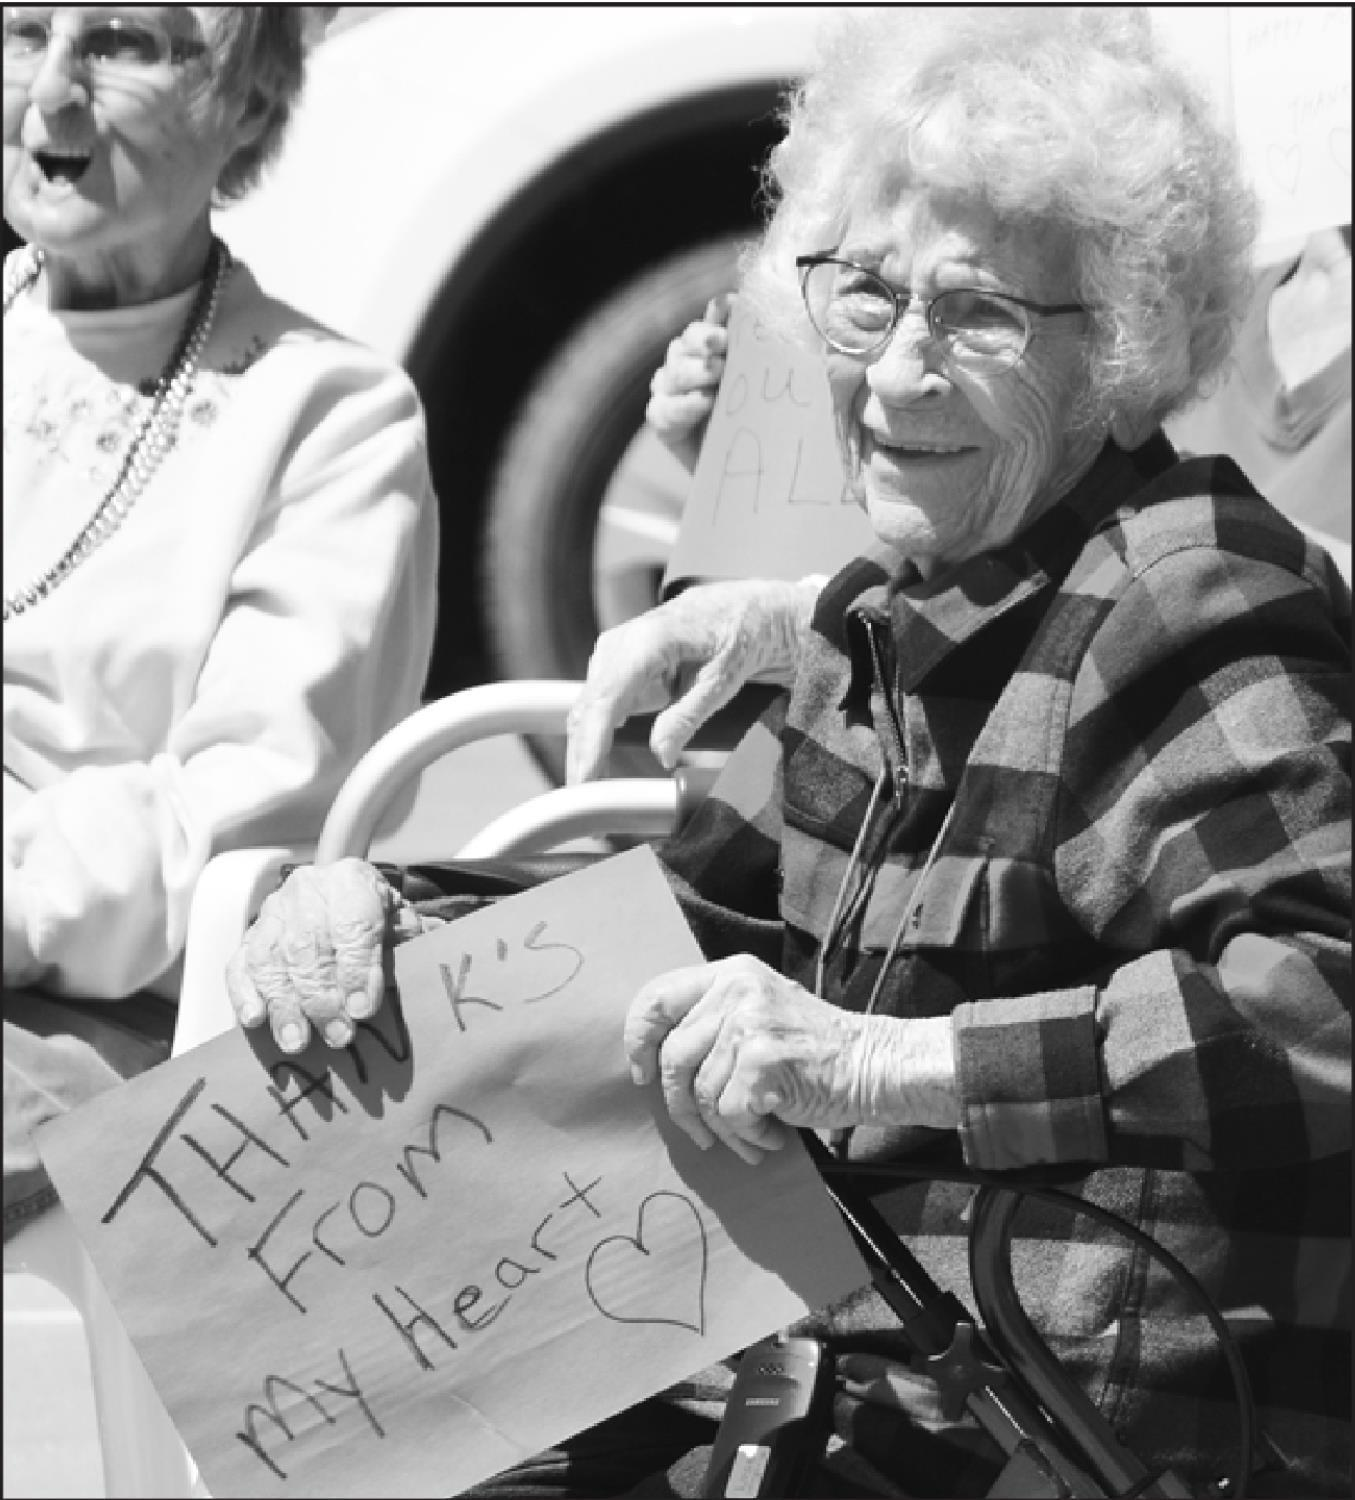 Photos by Sharon Sahlfeld Great Granddaughter Autumn Sneath (above left) provides a message for her Great Grandma Lorna Jones (above) during Tuesday's Hilltop Lodge Drive-By-Party Parade. Grandma returns her appreciation with a smile and a message of he